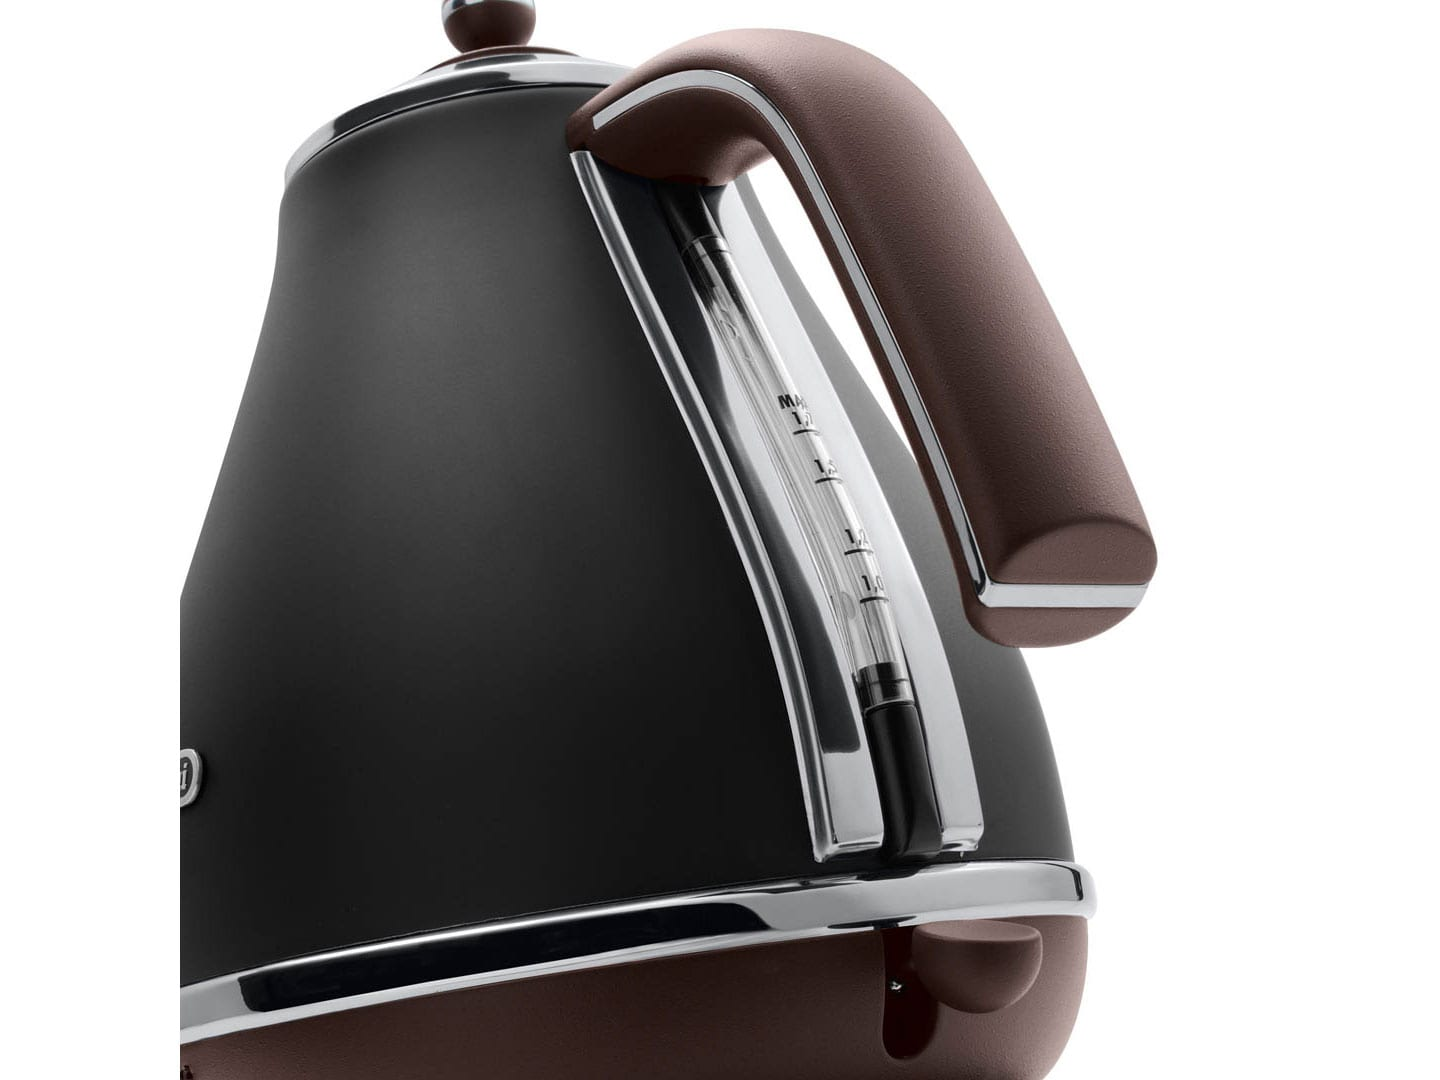 Icona Vintage Kettle - Black - KBOV 2001.BK